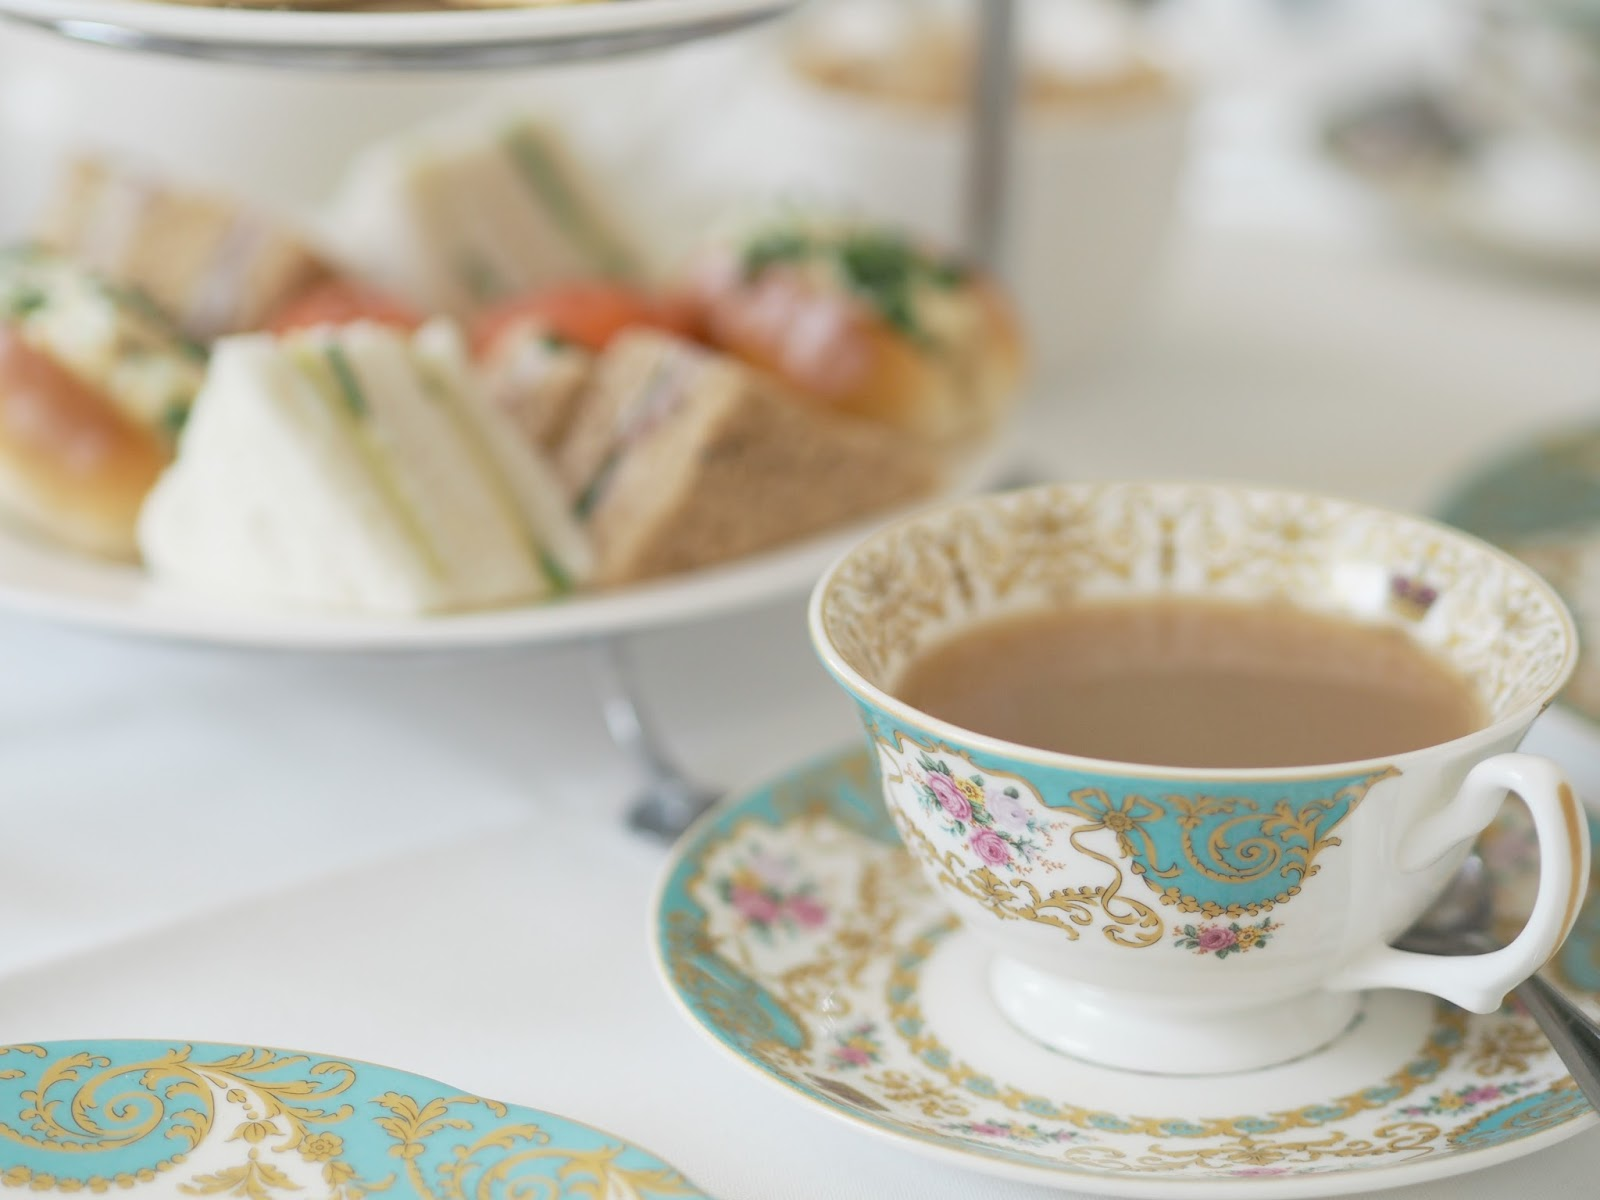 Tea Time: The Orangery at Kensington Palace - Places I Will Go